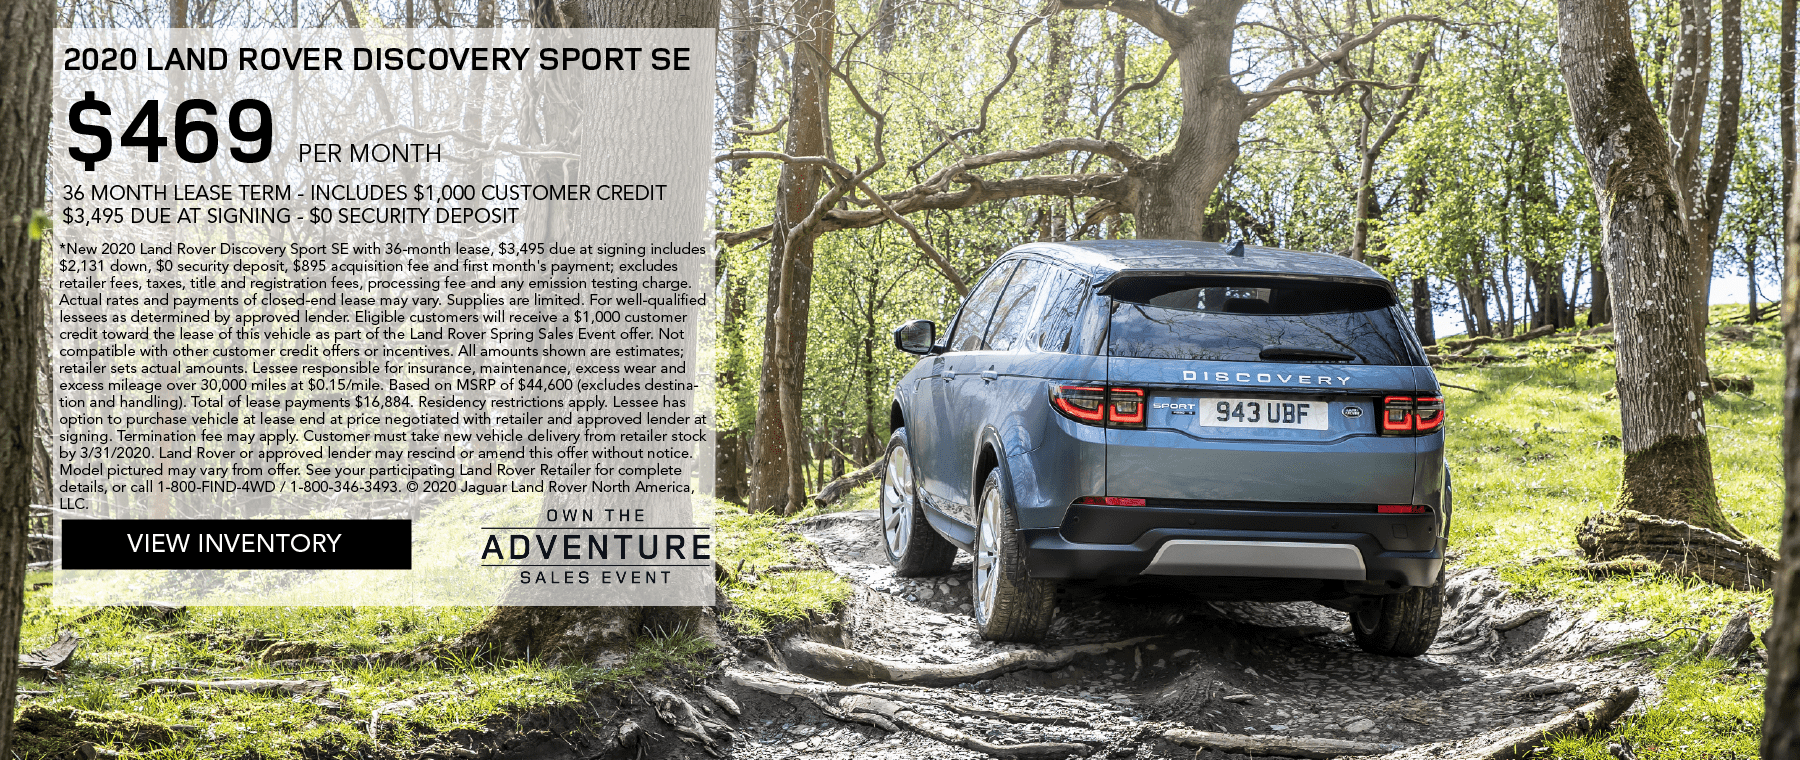 2020 LAND ROVER DISCOVERY SPORT SE. $469 PER MONTH. 36 MONTH LEASE TERM. $3,495 CASH DUE AT SIGNING. INCLUDES $1,000 CUSTOMER CREDIT. $0 SECURITY DEPOSIT. 10,000 MILES PER YEAR. OFFER ENDS 3/31/2020. OWN THE ADVENTURE SALES EVENT. VIEW INVENTORY. BLUE LAND ROVER DISCOVERY SPORT SE DRIVING THROUGH THE WOODS.